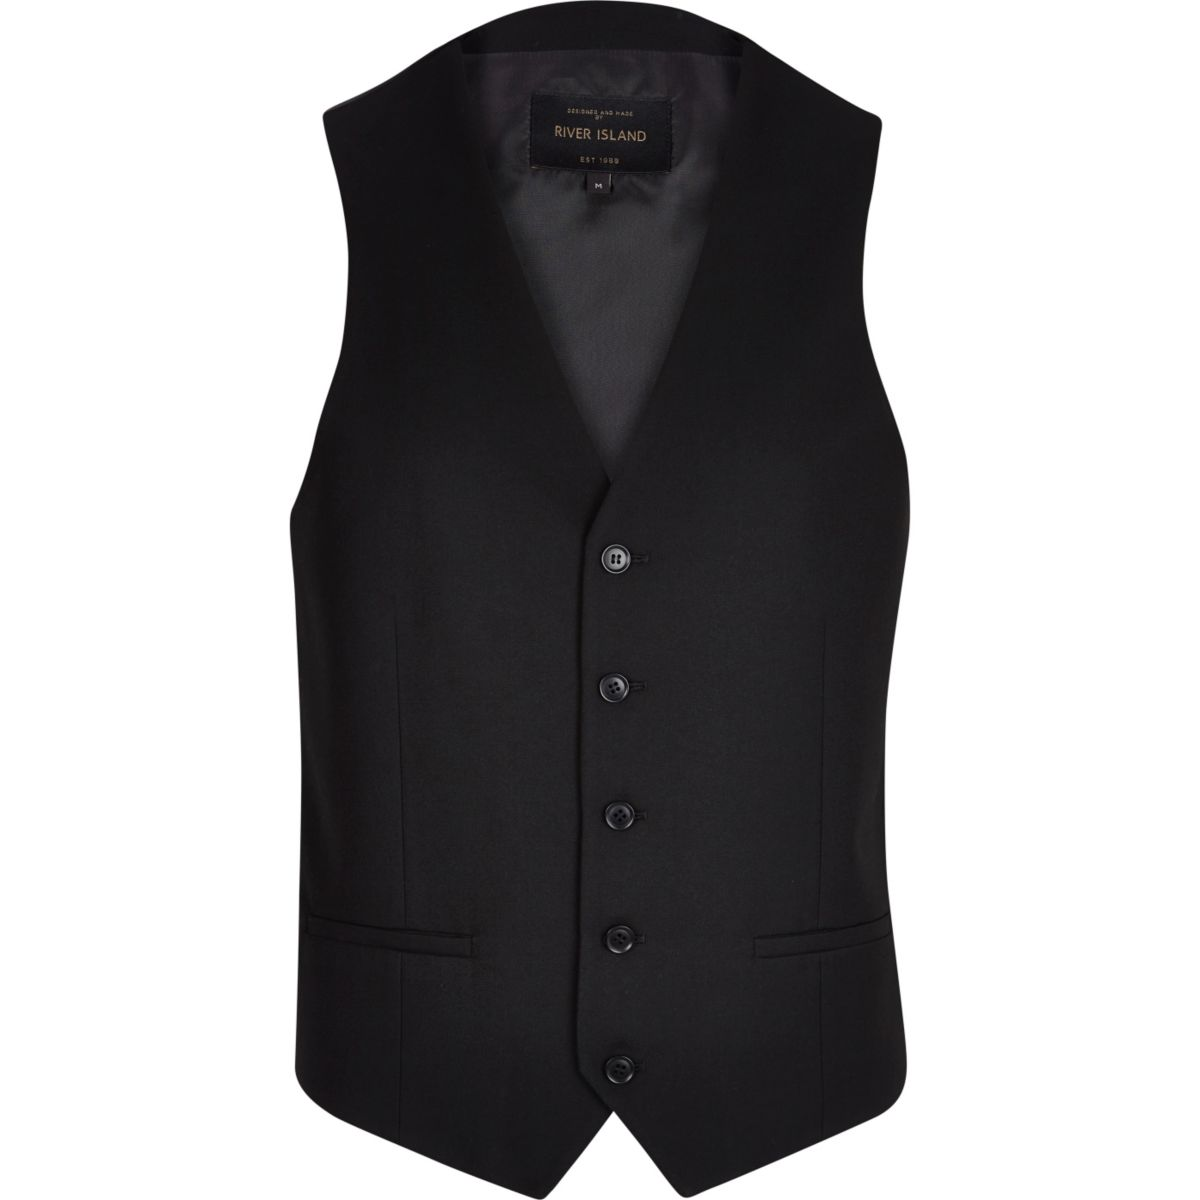 Clearance waistcoats in a range of fits and styles. Transform your 2 piece suit in to a 3 piece suit or add a splash of colour to your formal event. Shop all clearance waistcoats online now.